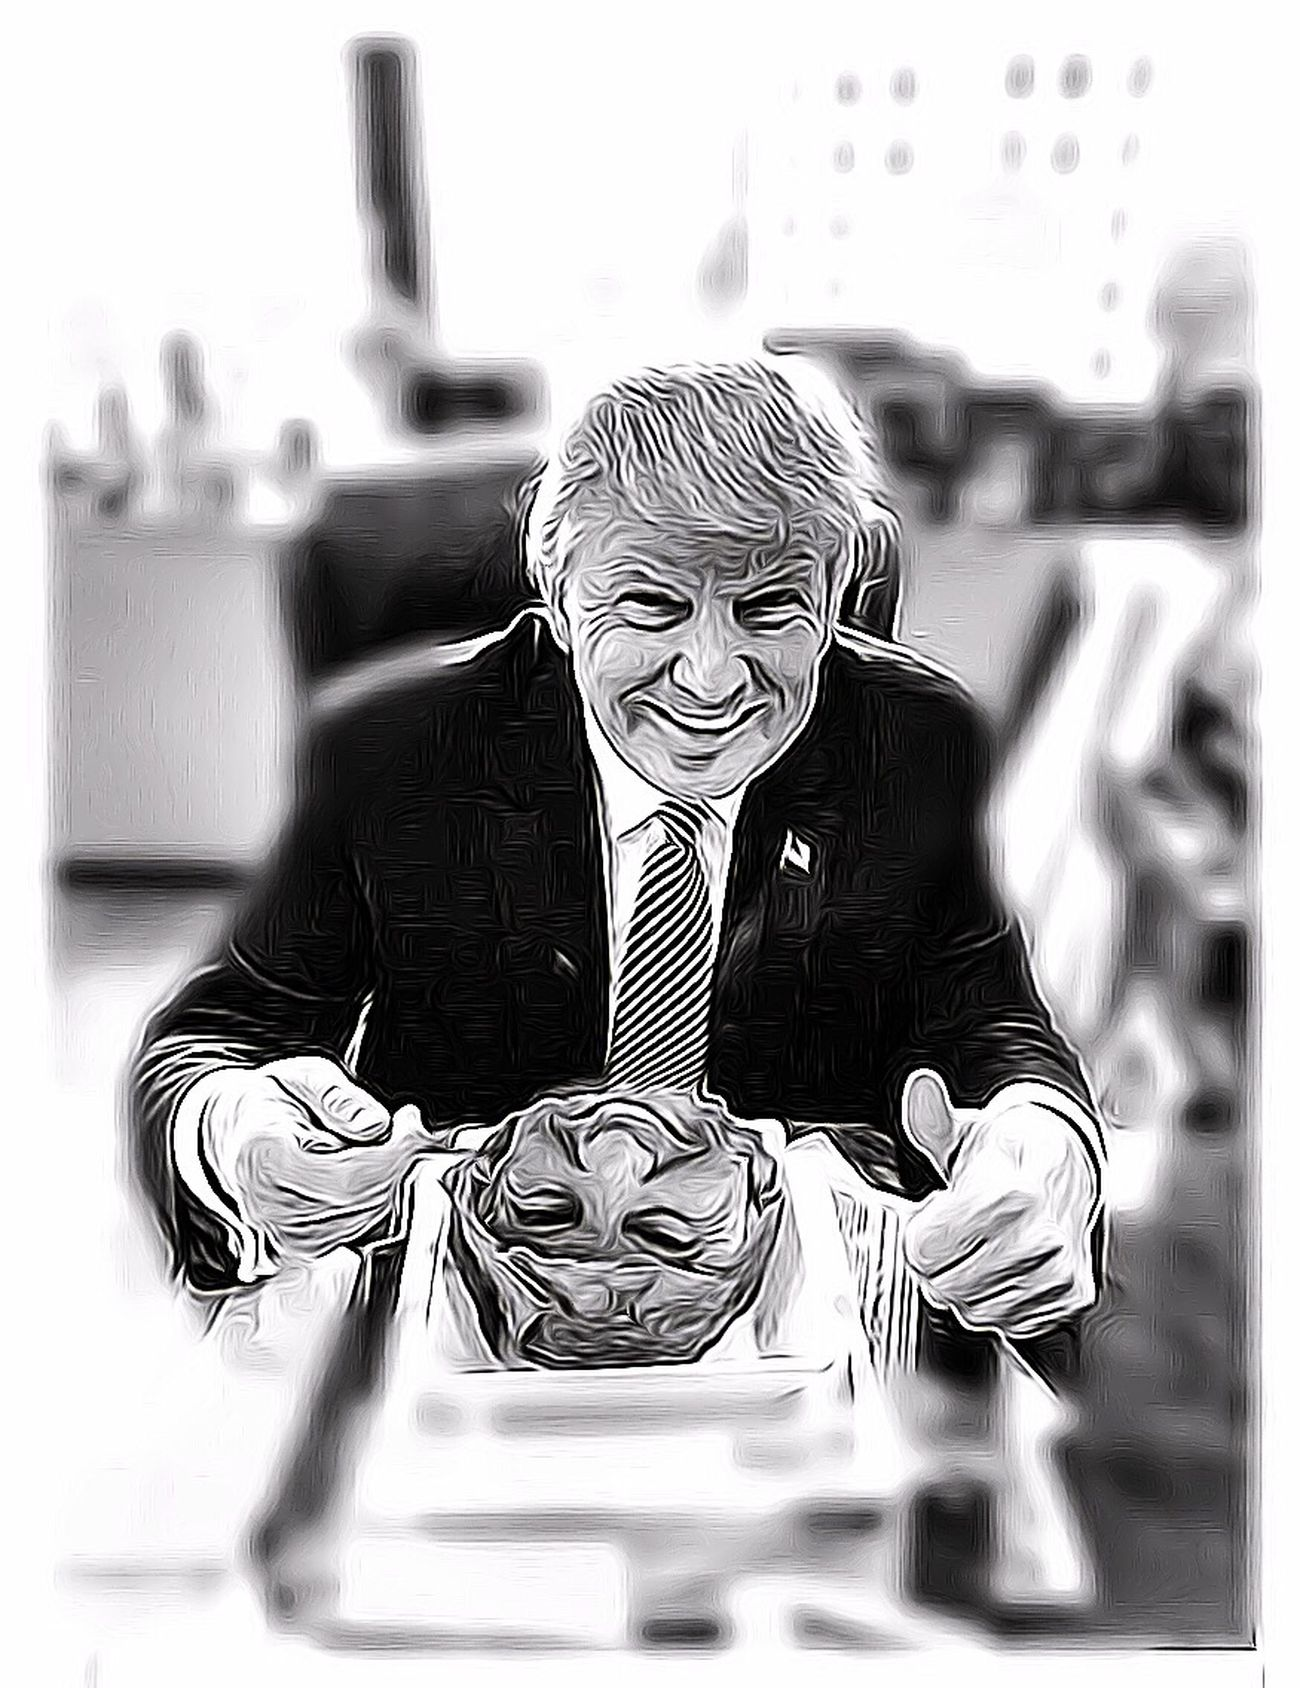 Amo El Taco Trump Consumed By Consumption Forgotten Dreams New Nightmares Human Condition Splinters Of Reality Facial Experiments Photographic Approximation Hiden Faces Is Anything Out There Real? A Daily Accident